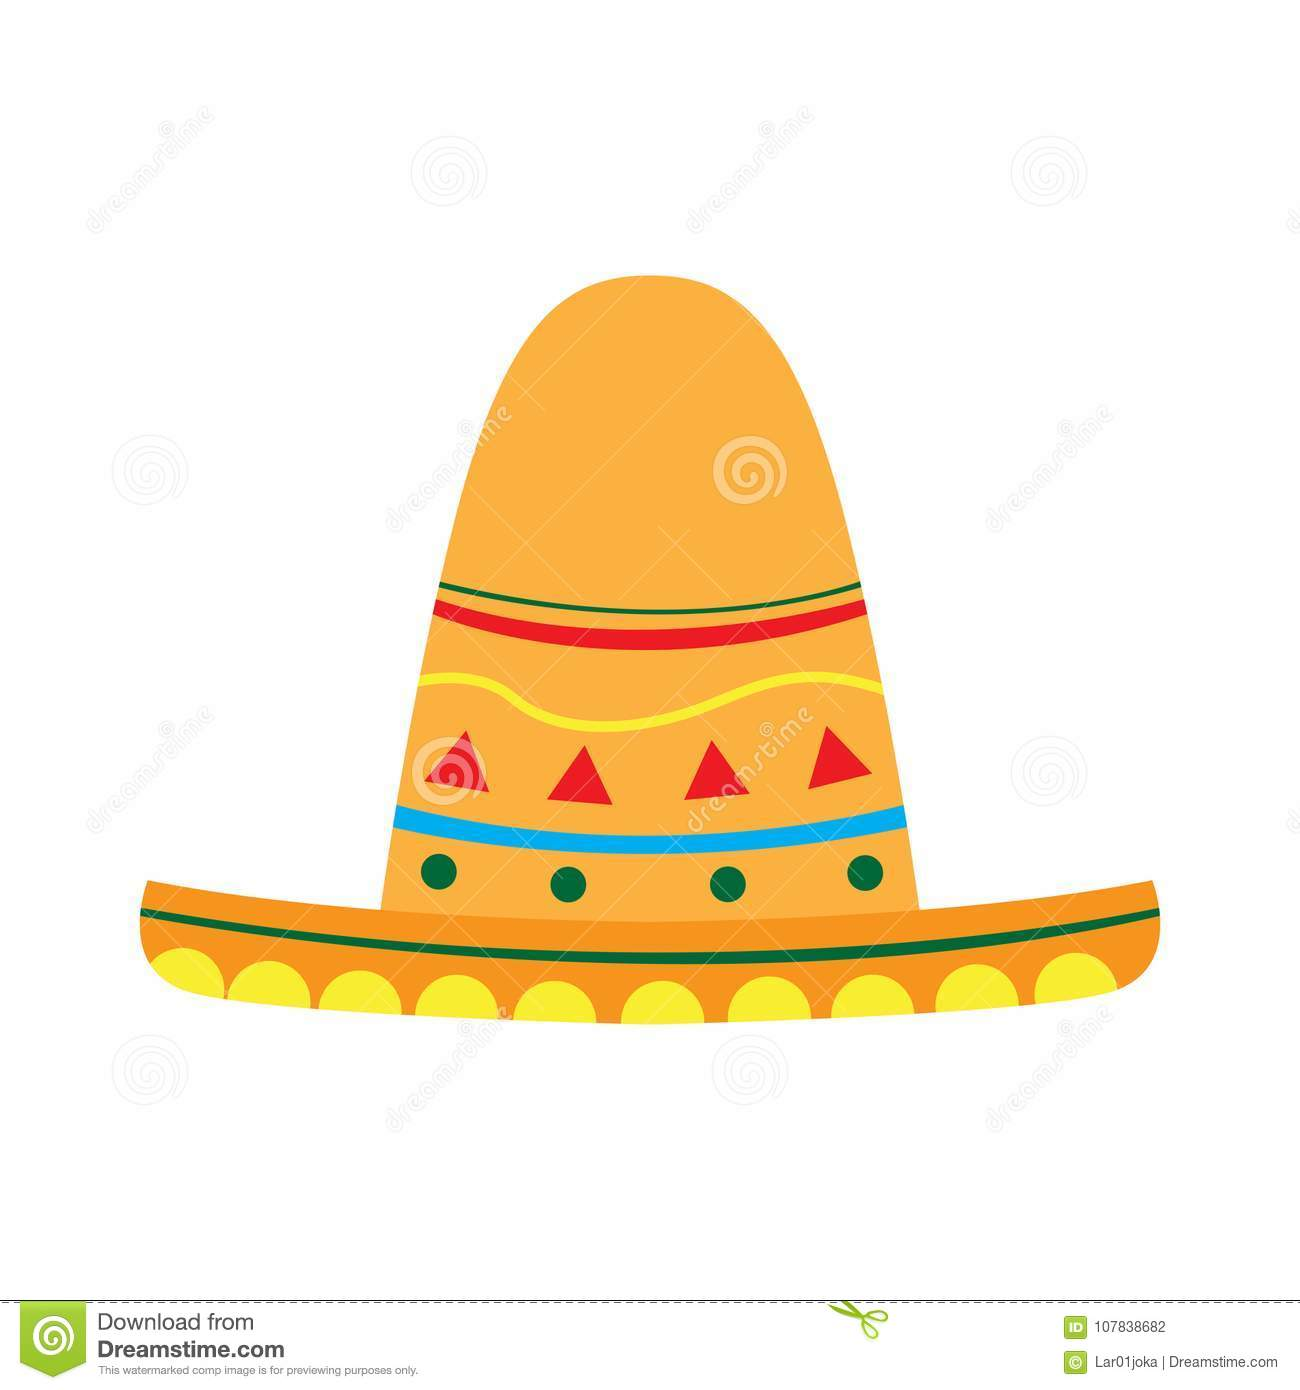 Mexican Hat Icon Stock Vector Illustration Of Spanish 107838682